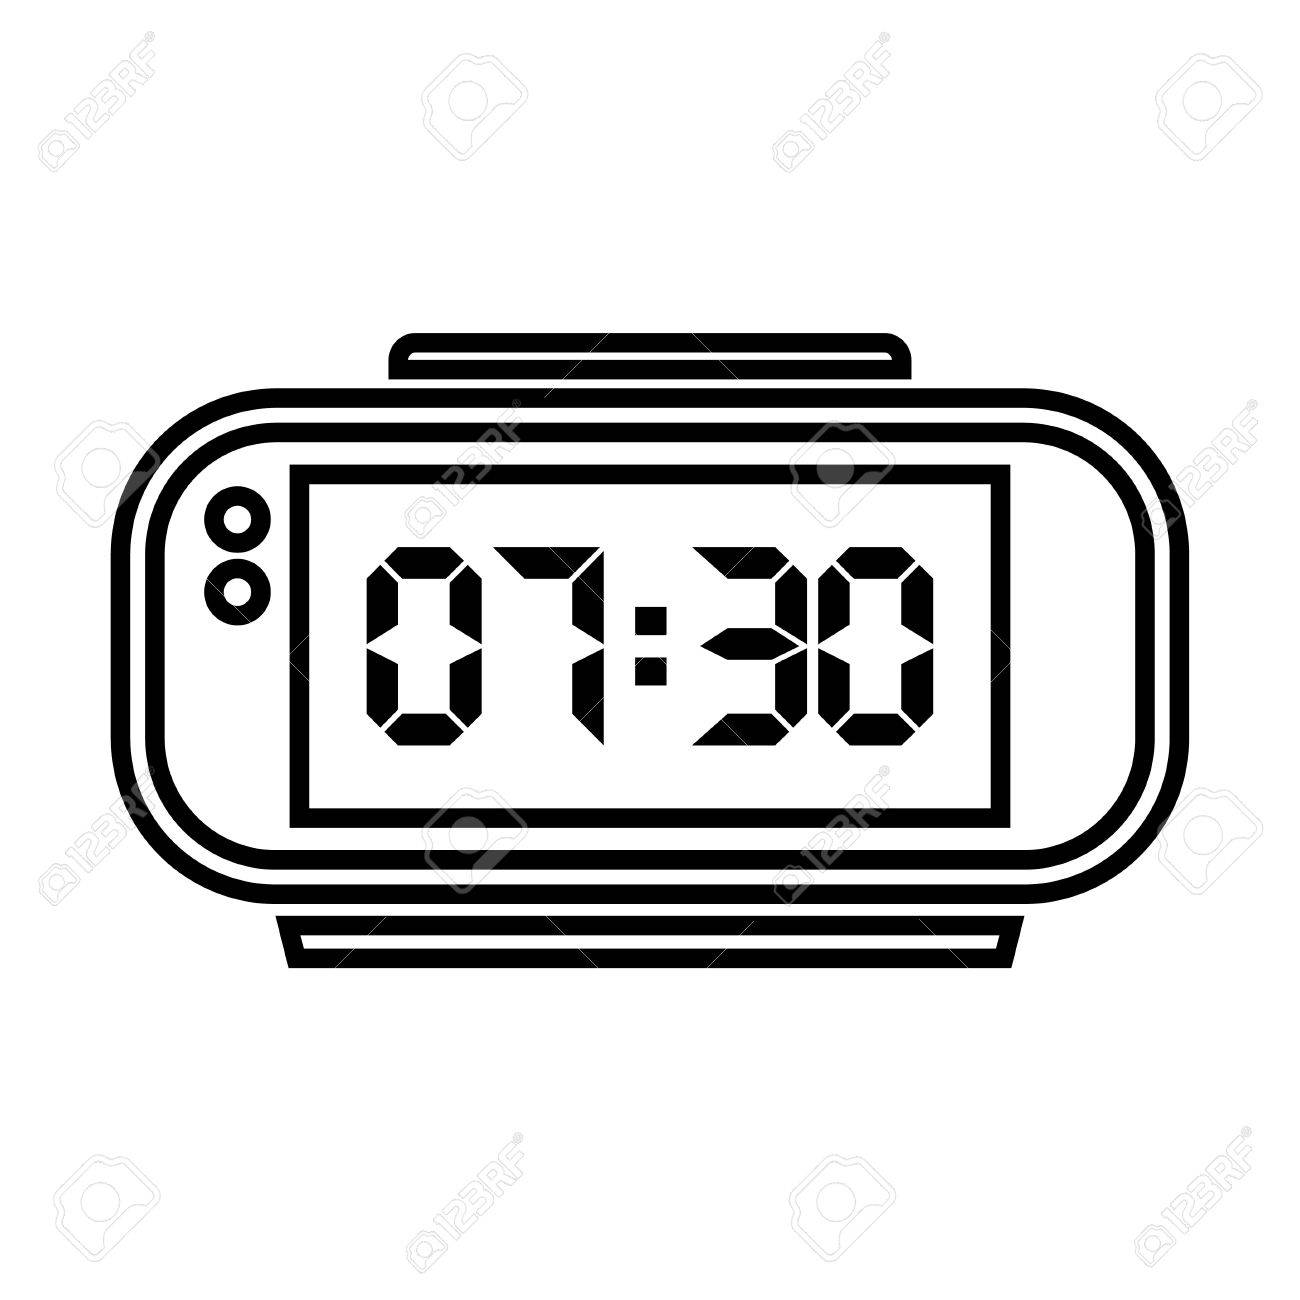 Digital Clock Digital Alarm Clock Vector Illustration On White Background